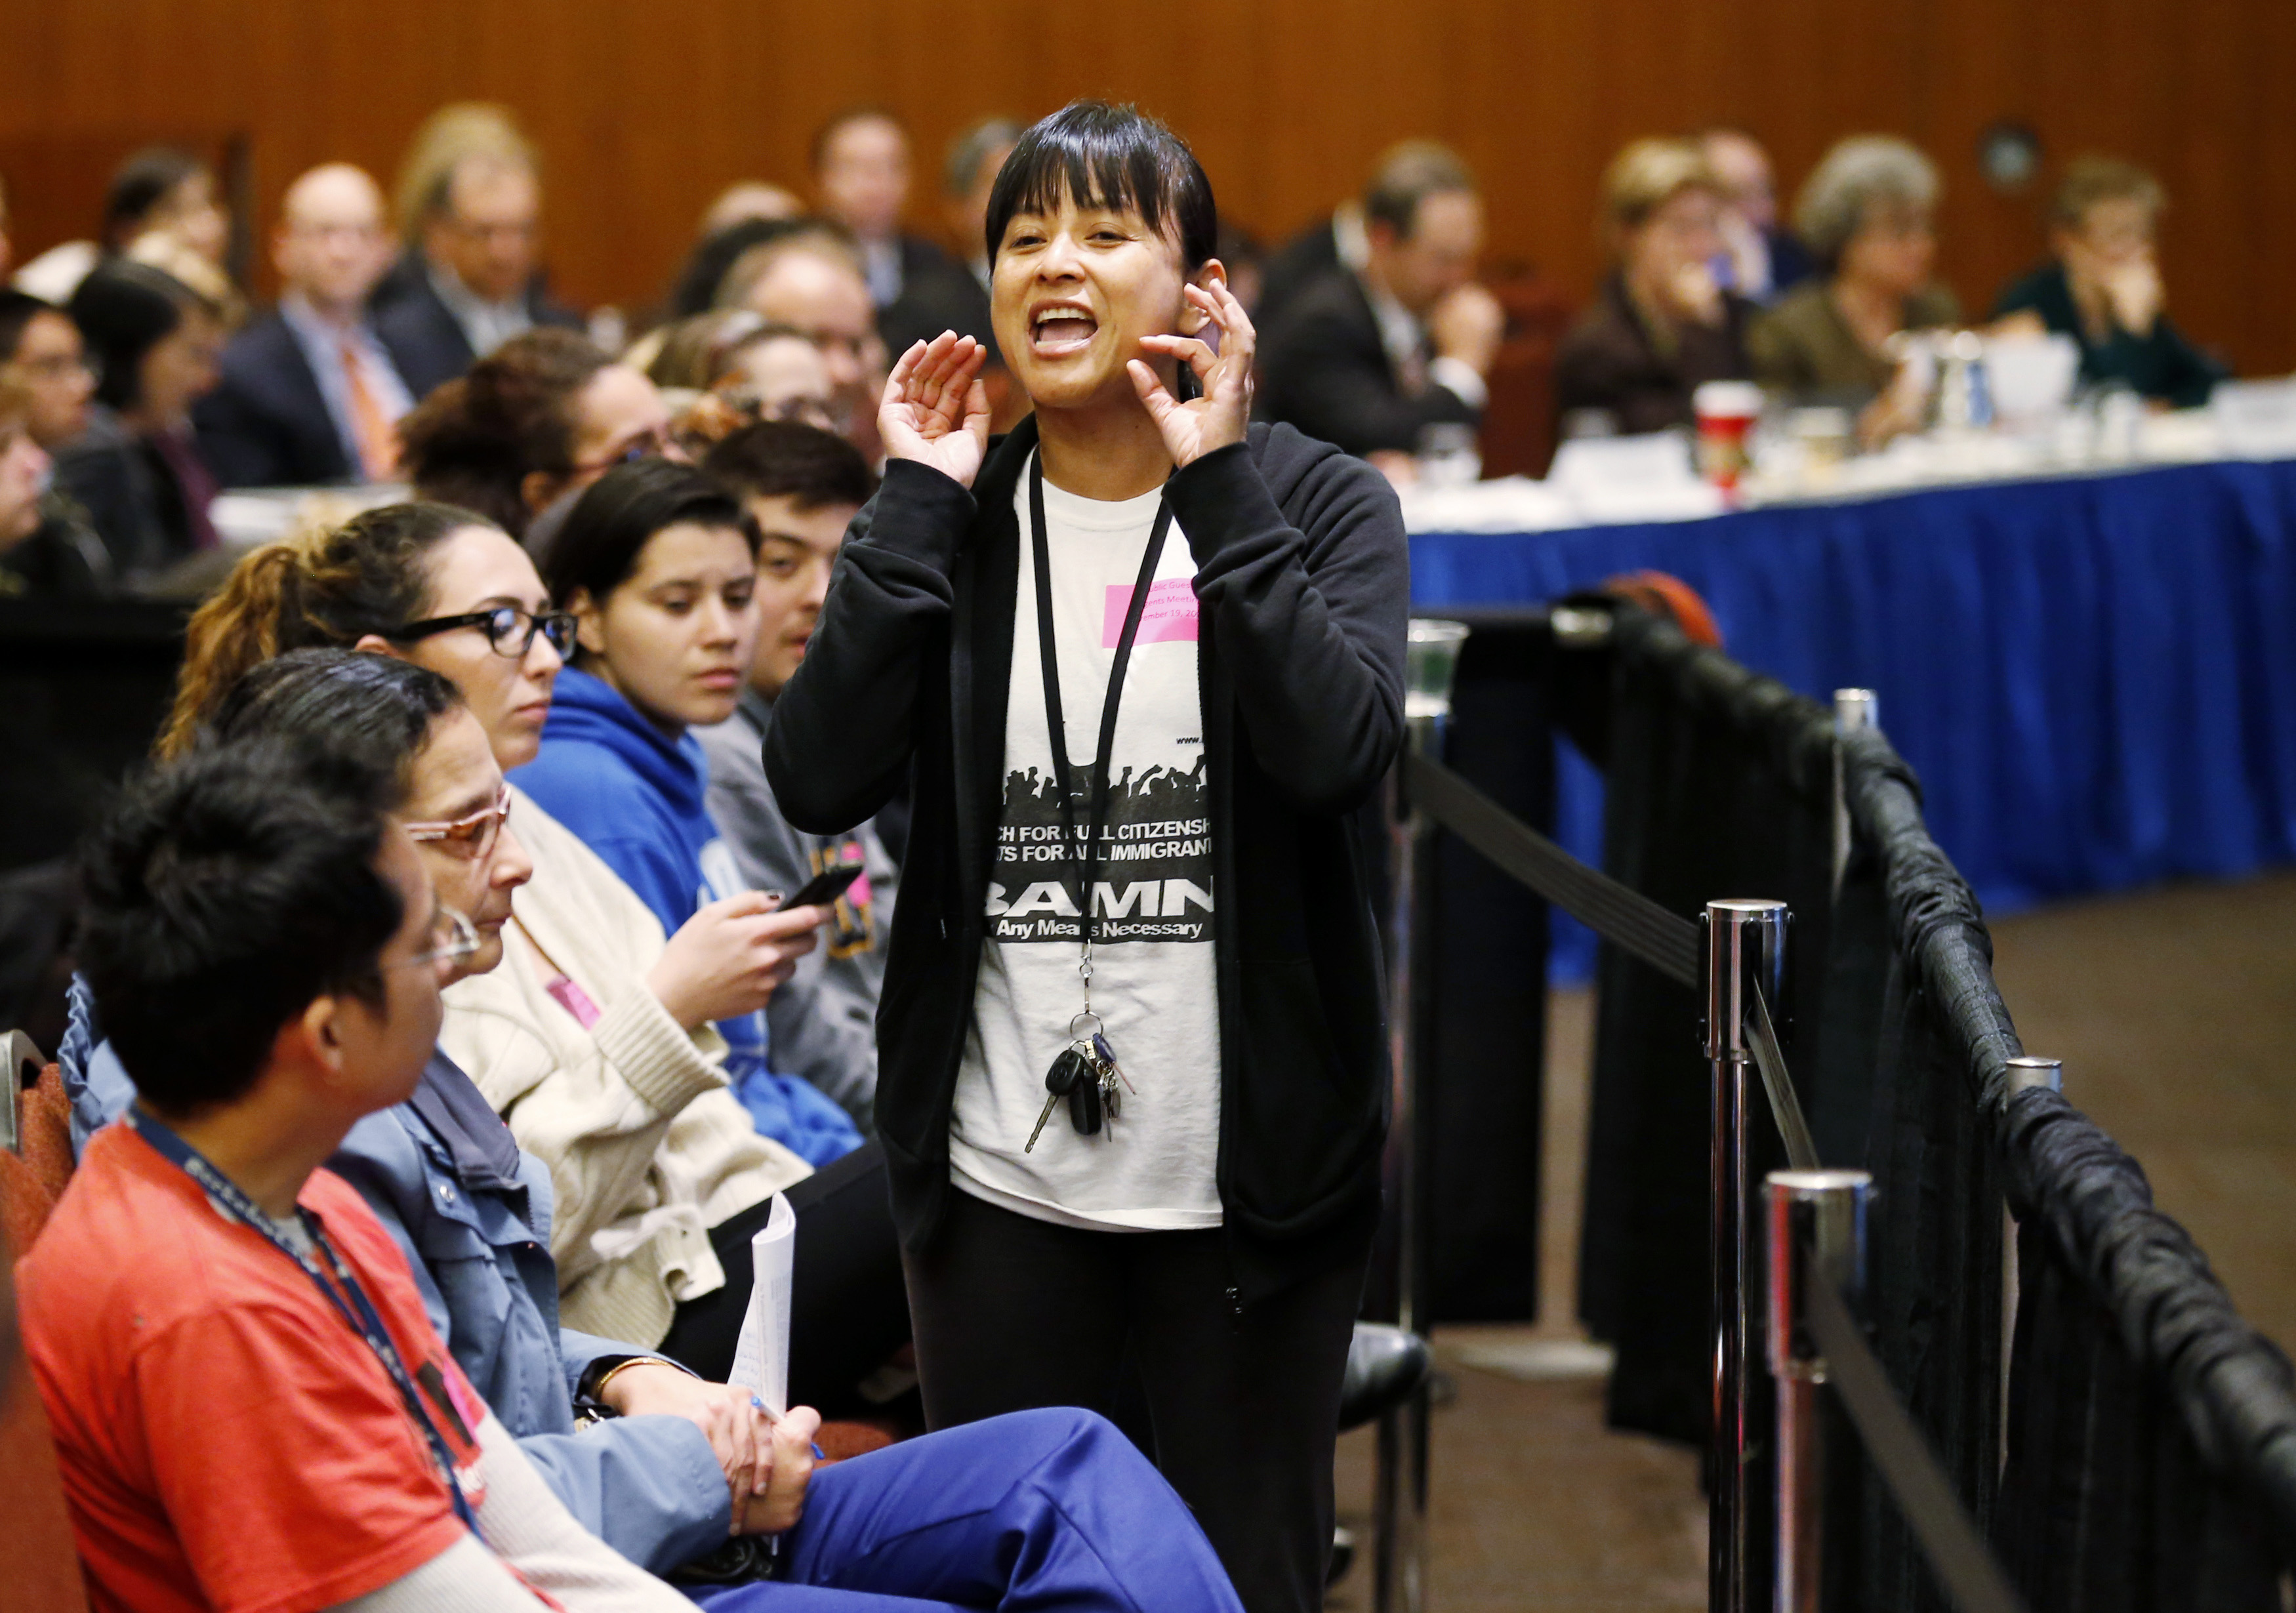 Yvette Felarca, from By Any Means Necessary, yells during the voting portion of a University of California Regents meeting, on a vote to raise tuition, at the University of California, San Francisco November 19, 2014. The University of California would raise tuition by more than 25 percent over five years under a plan passed on Wednesday by a committee of the system's governing board, a move strongly opposed by Democratic Governor Jerry Brown. The full Board of Regents will vote on Thursday on the proposal, part of an escalating and public contest of wills between Brown and Janet Napolitano, the former U.S. homeland security chief who is now the university's president. REUTERS/Beck Diefenbach